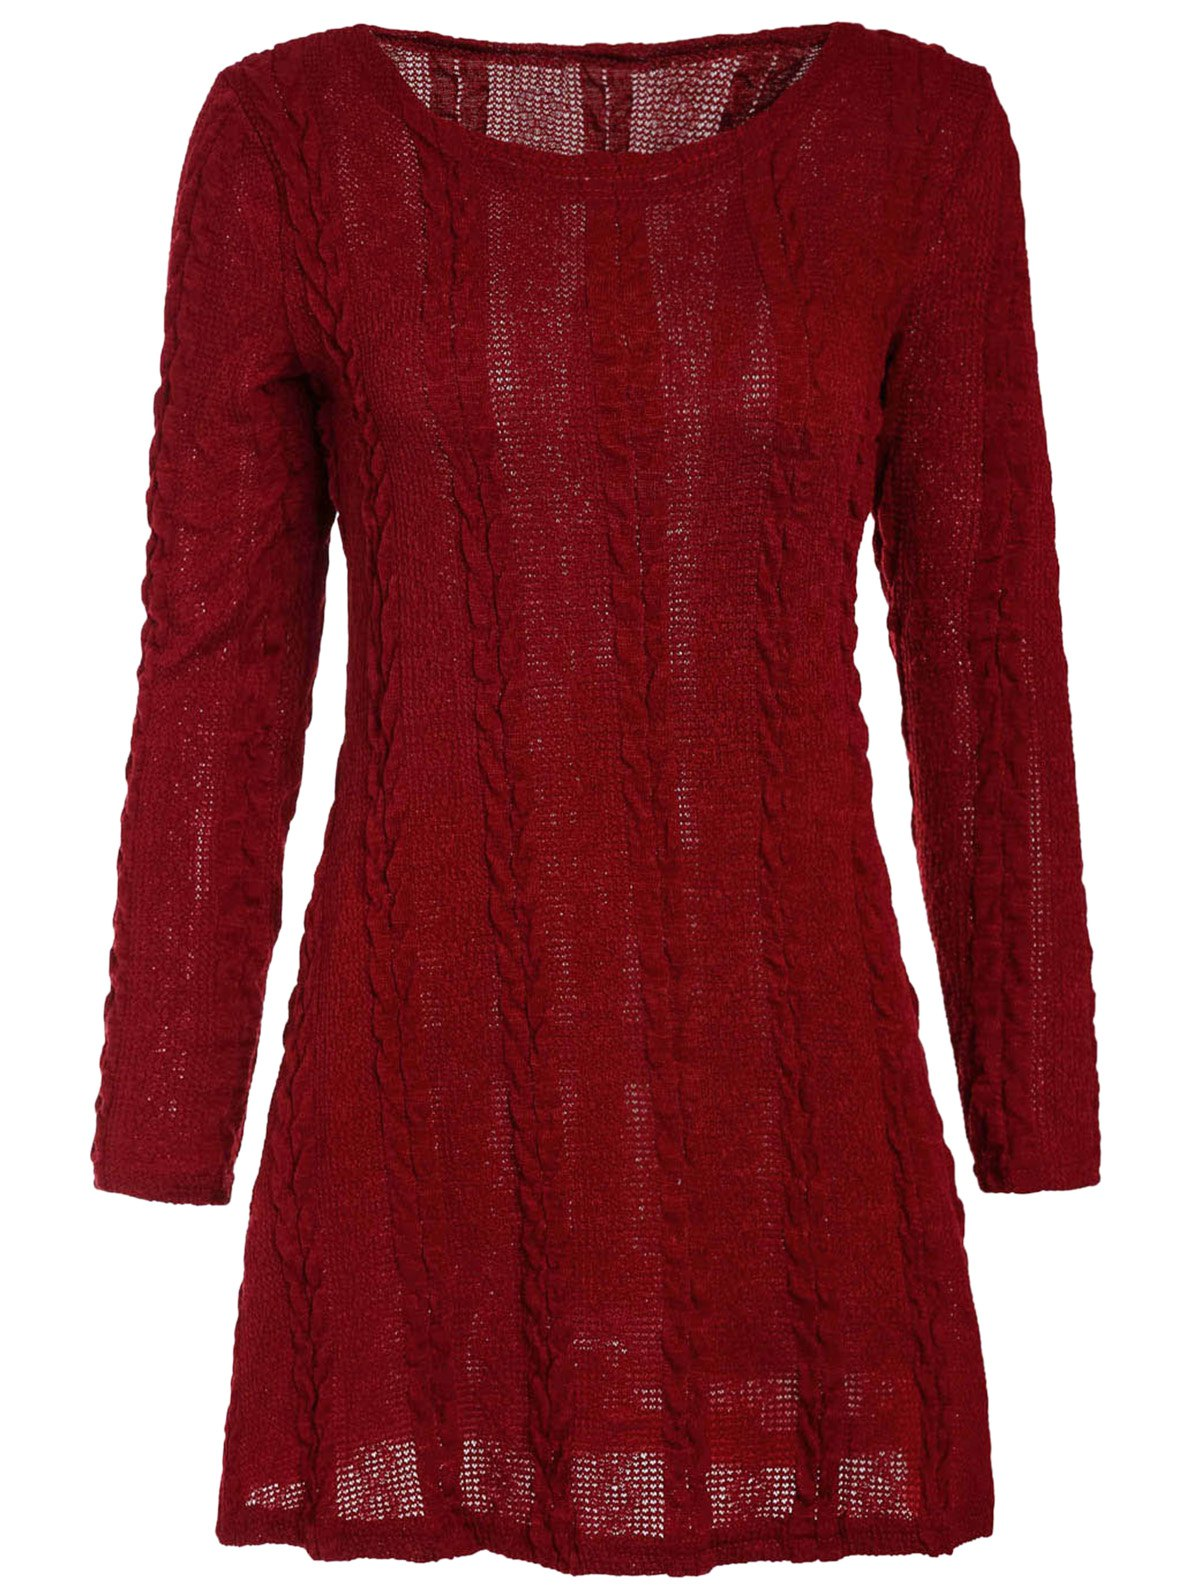 Brief A-Line Scoop Neck Long Sleeve Dress For Women - WINE RED M